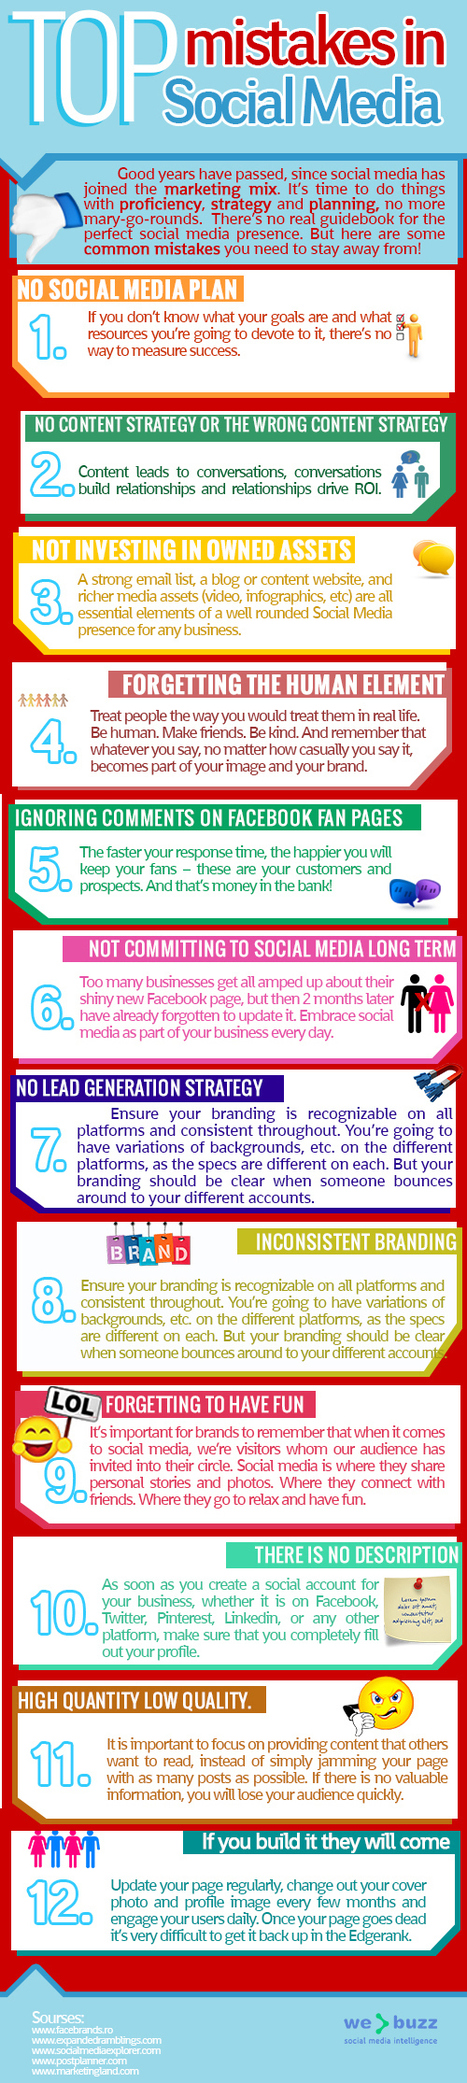 12 Common Mistakes that are Ruining Your Social Media Marketing Strategy | MarketingHits | Scoop.it